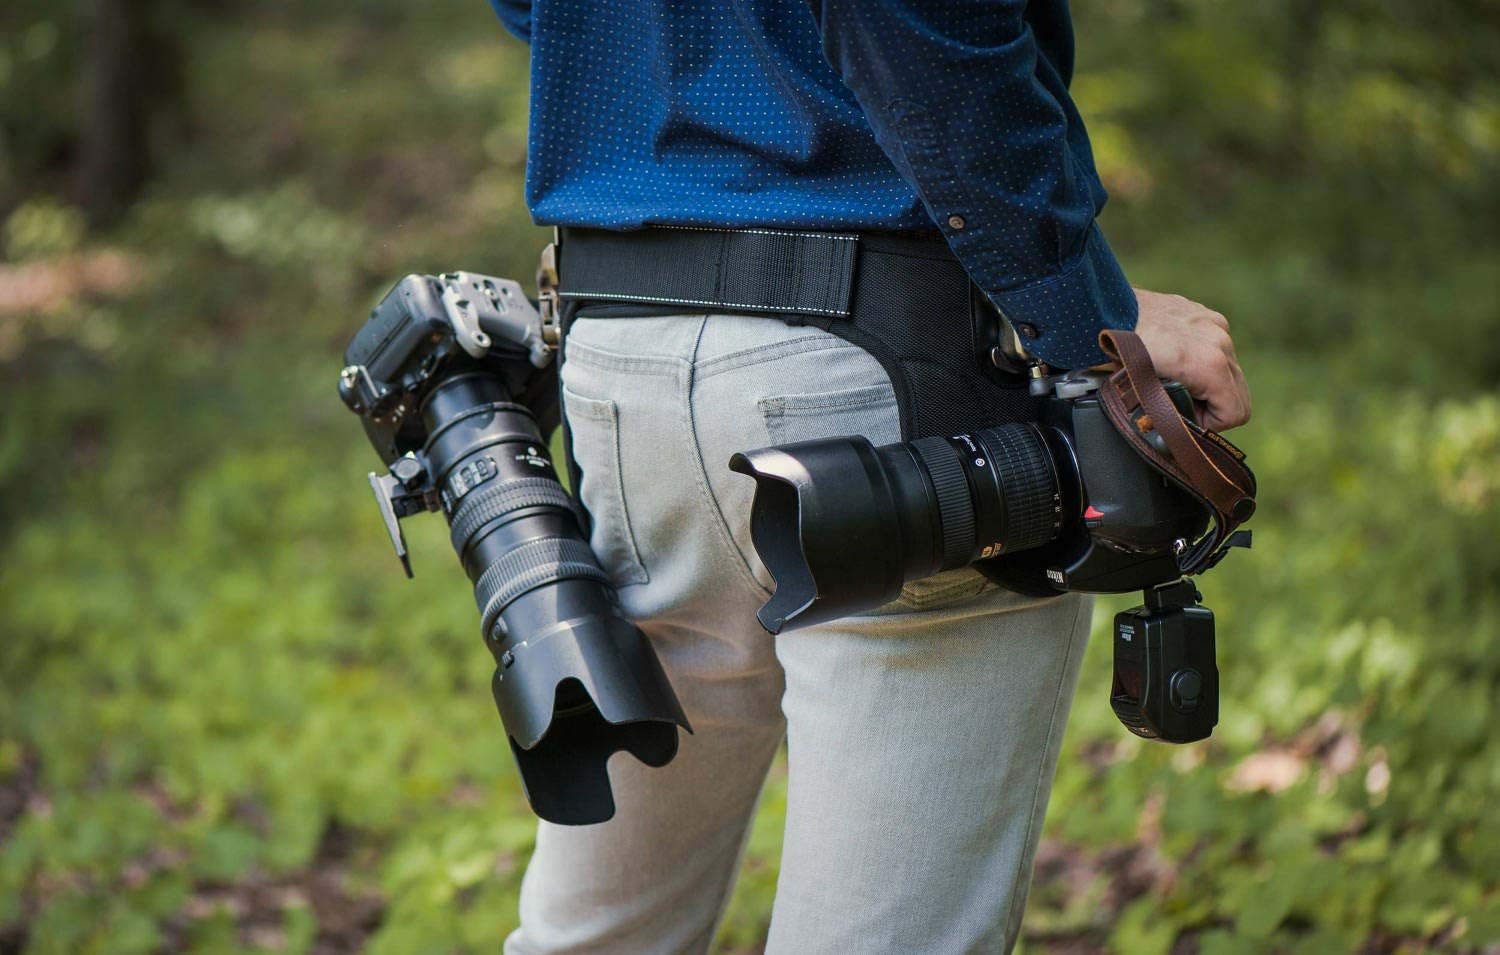 Spider Camera Holster SpiderPro Dual Camera System v2 (DCS), Belt System with Holsters for Two DSLRs, and Camera Cleaning Bundle by SpiderHolster (Image #9)